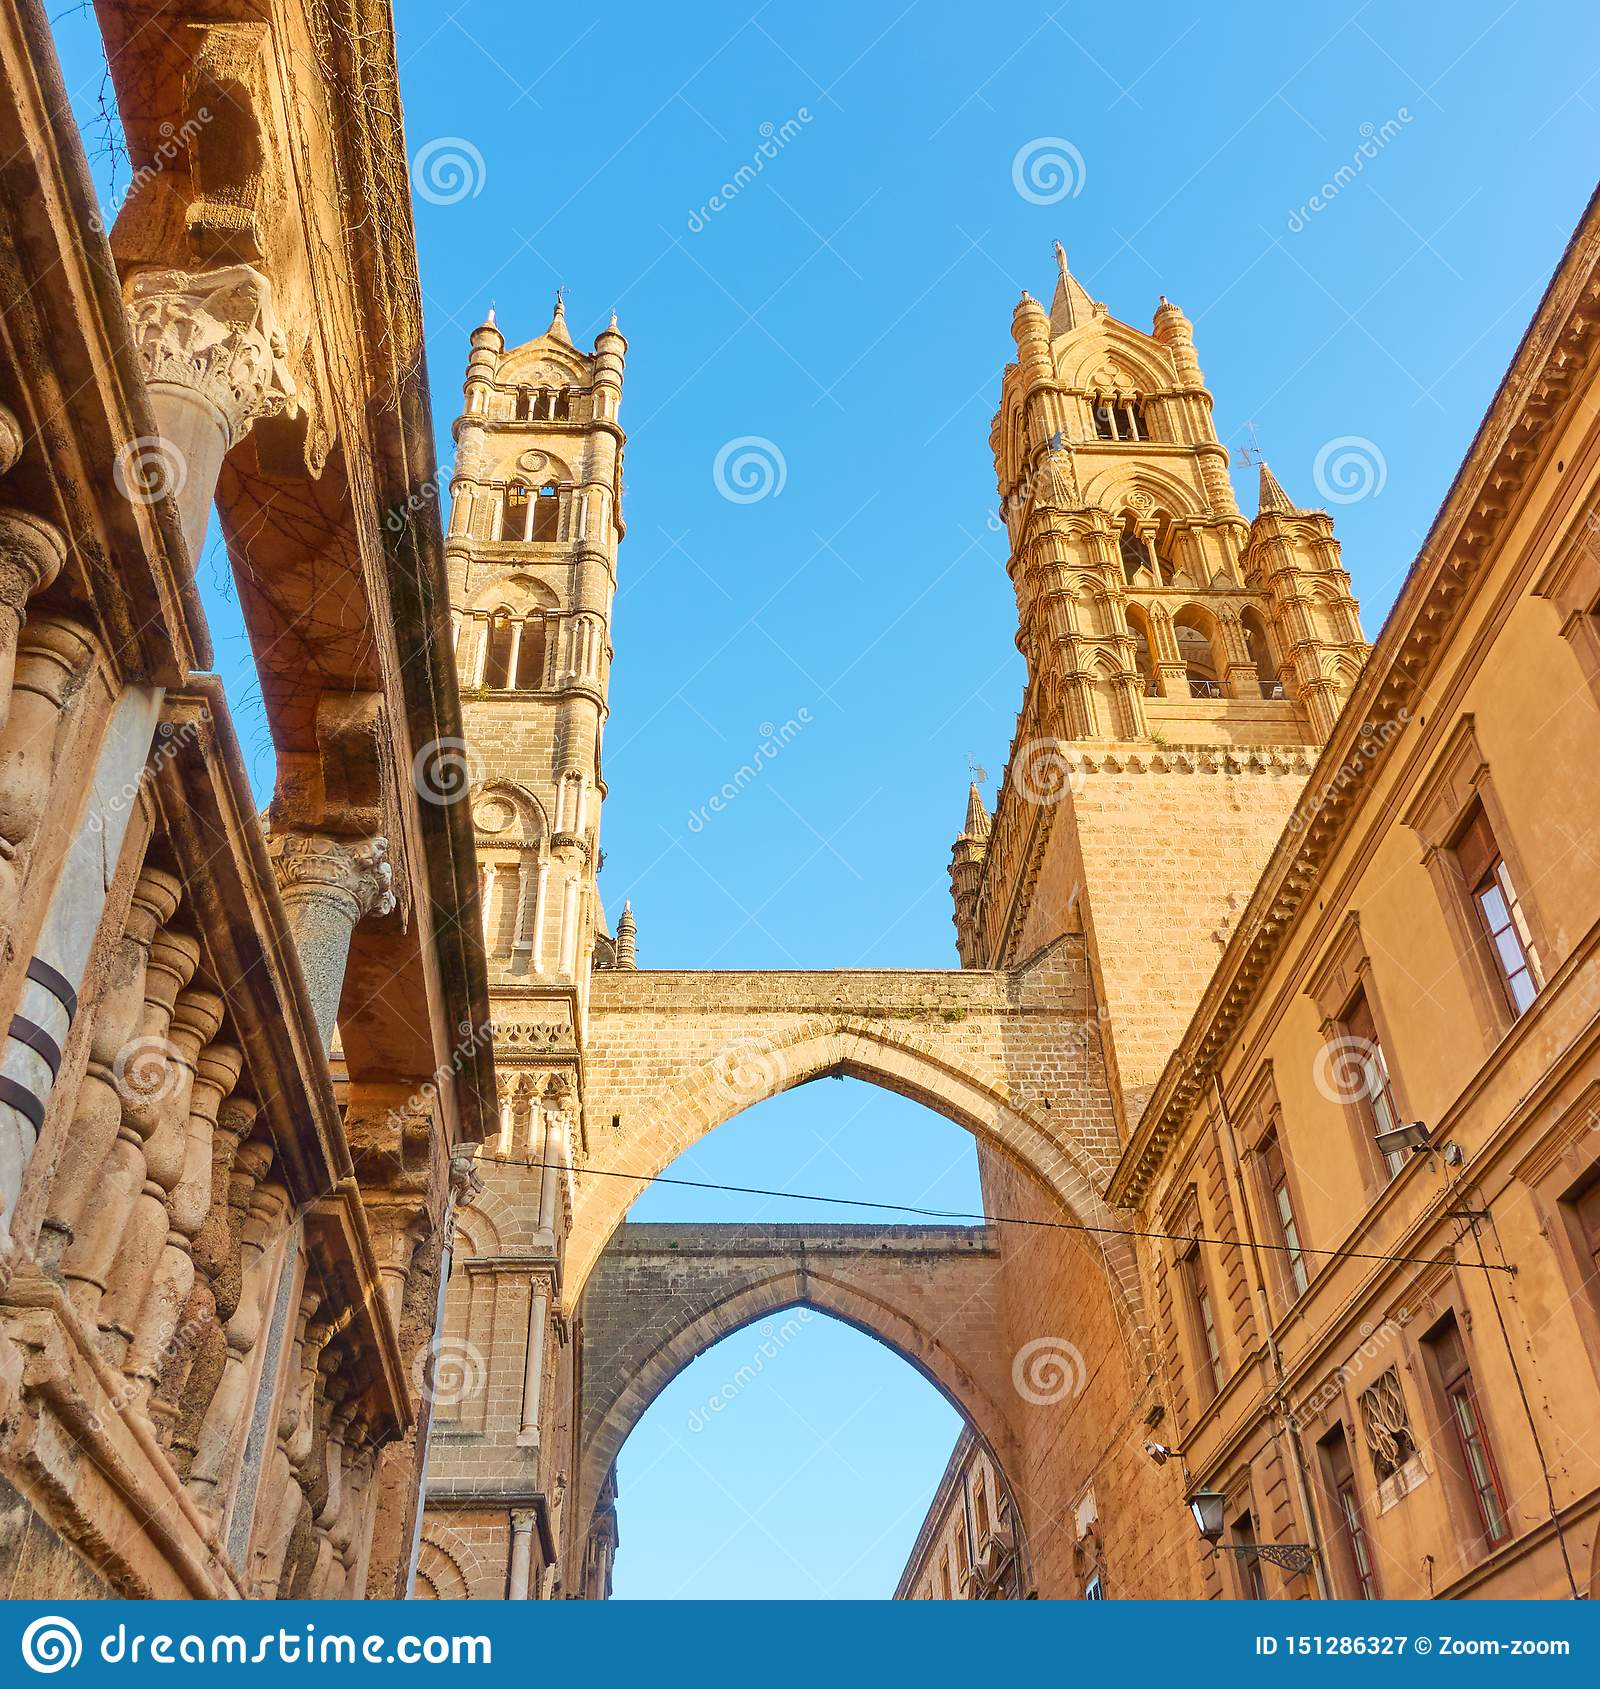 Towers Of Palermo Cathedral Stock Image - Image of ...